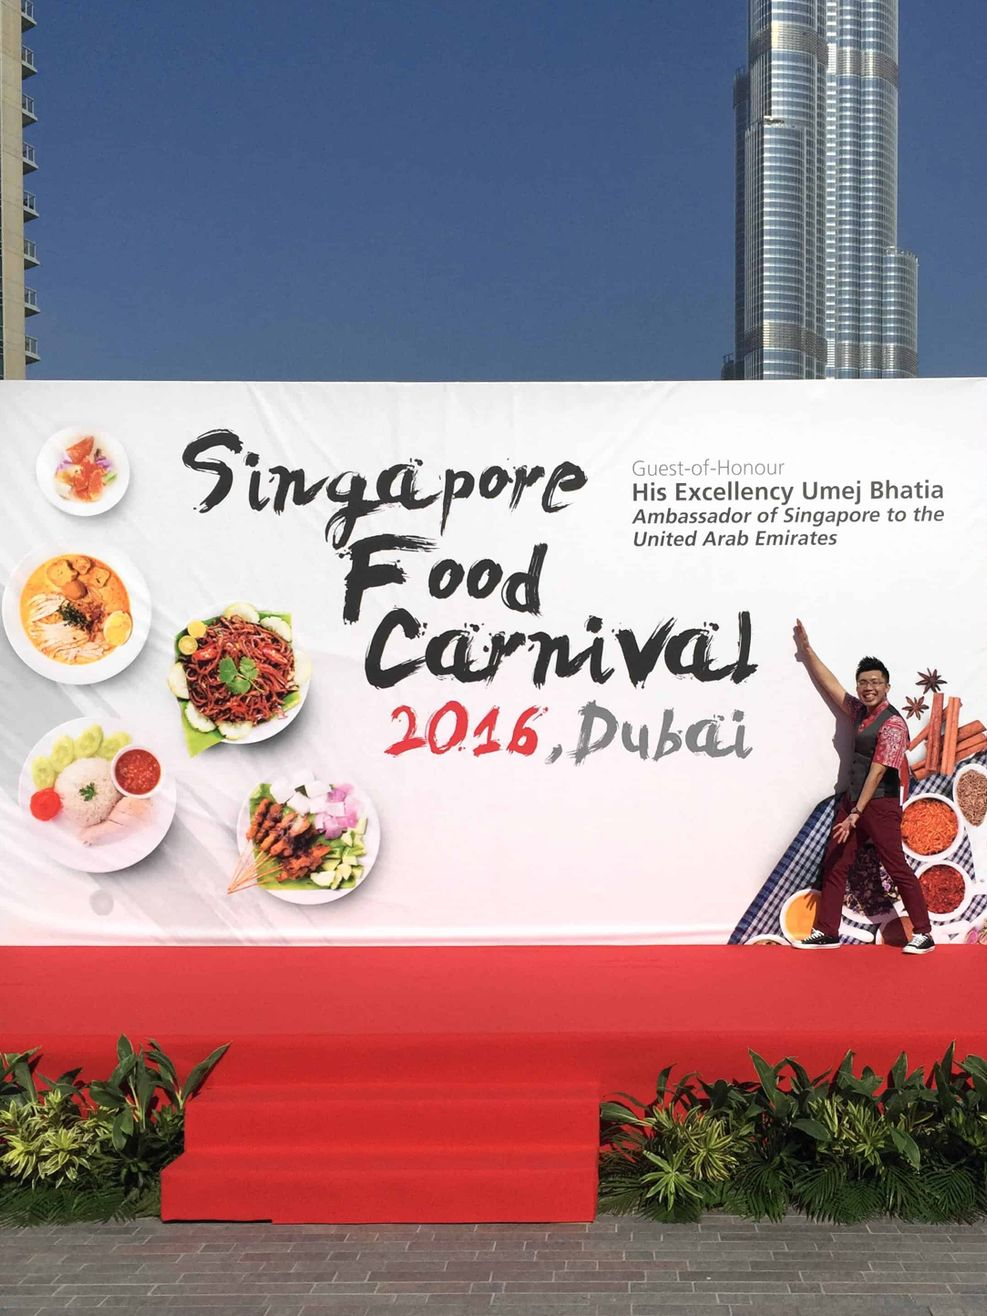 13 Singapore-Food-Carnival-in-Dubai-1-Emcee-MC-Host-Singapore